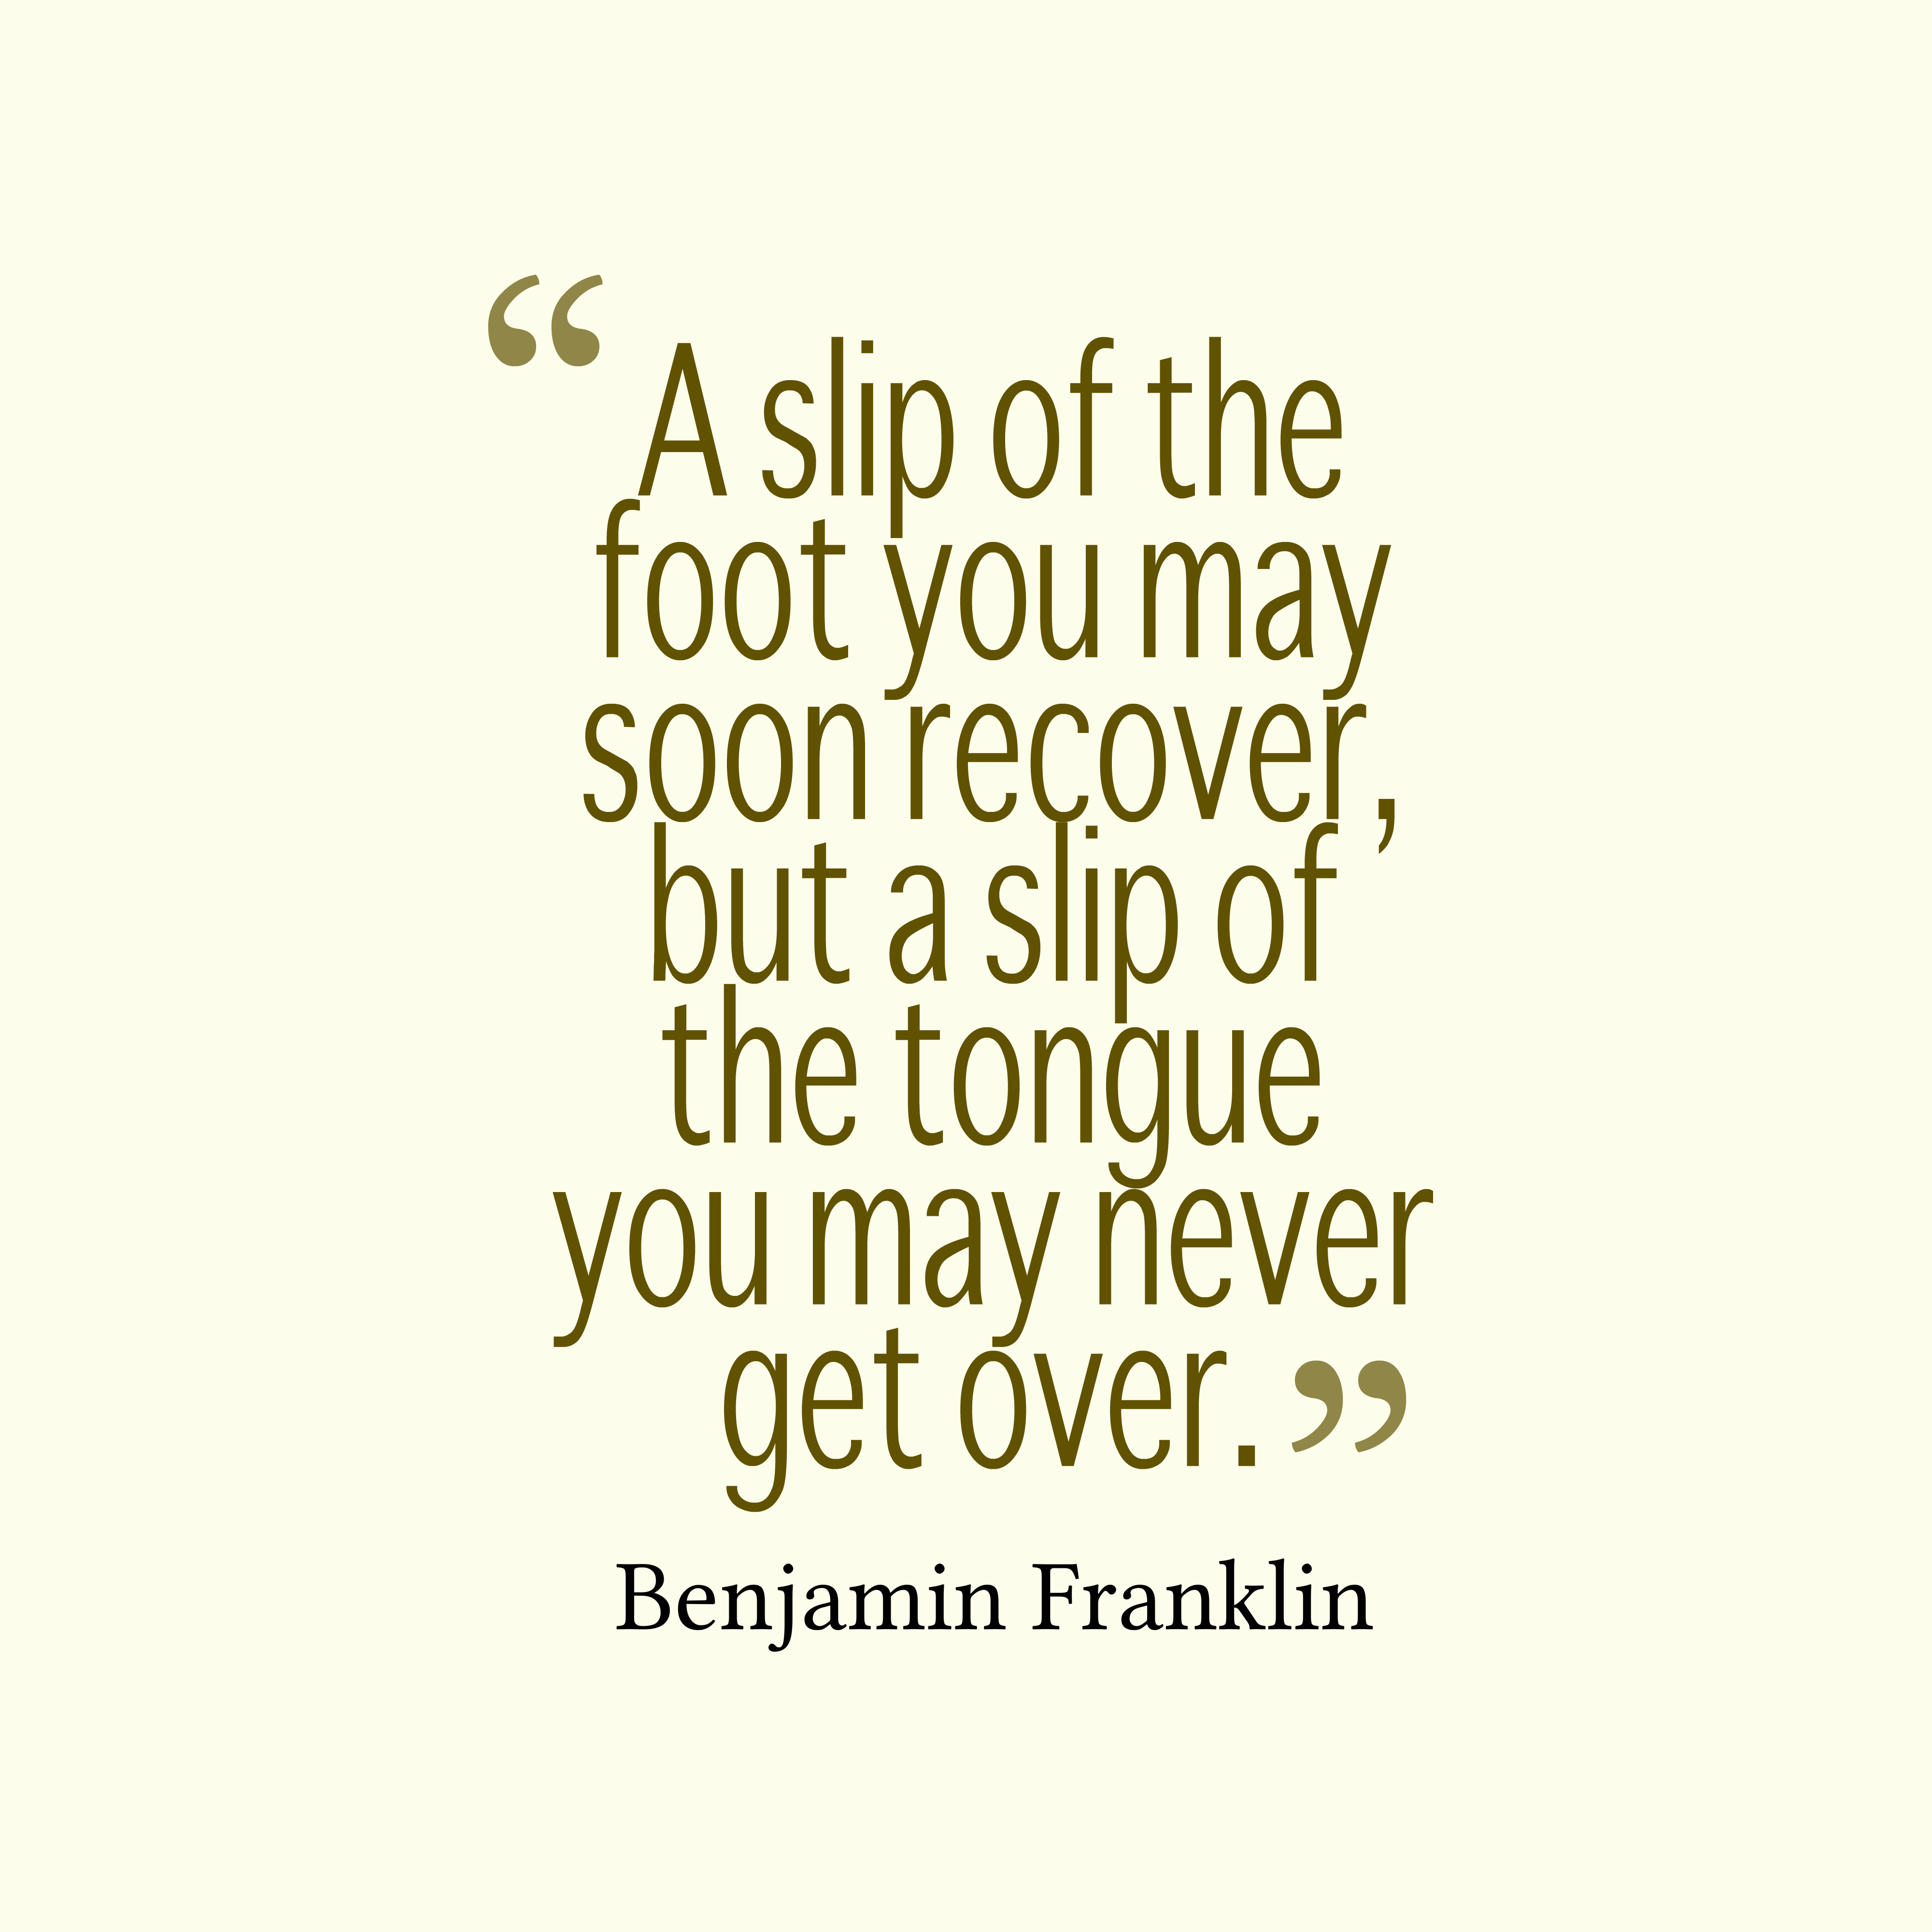 Quotes image of A slip of the foot you may soon recover, but a slip of the tongue you may never get over.